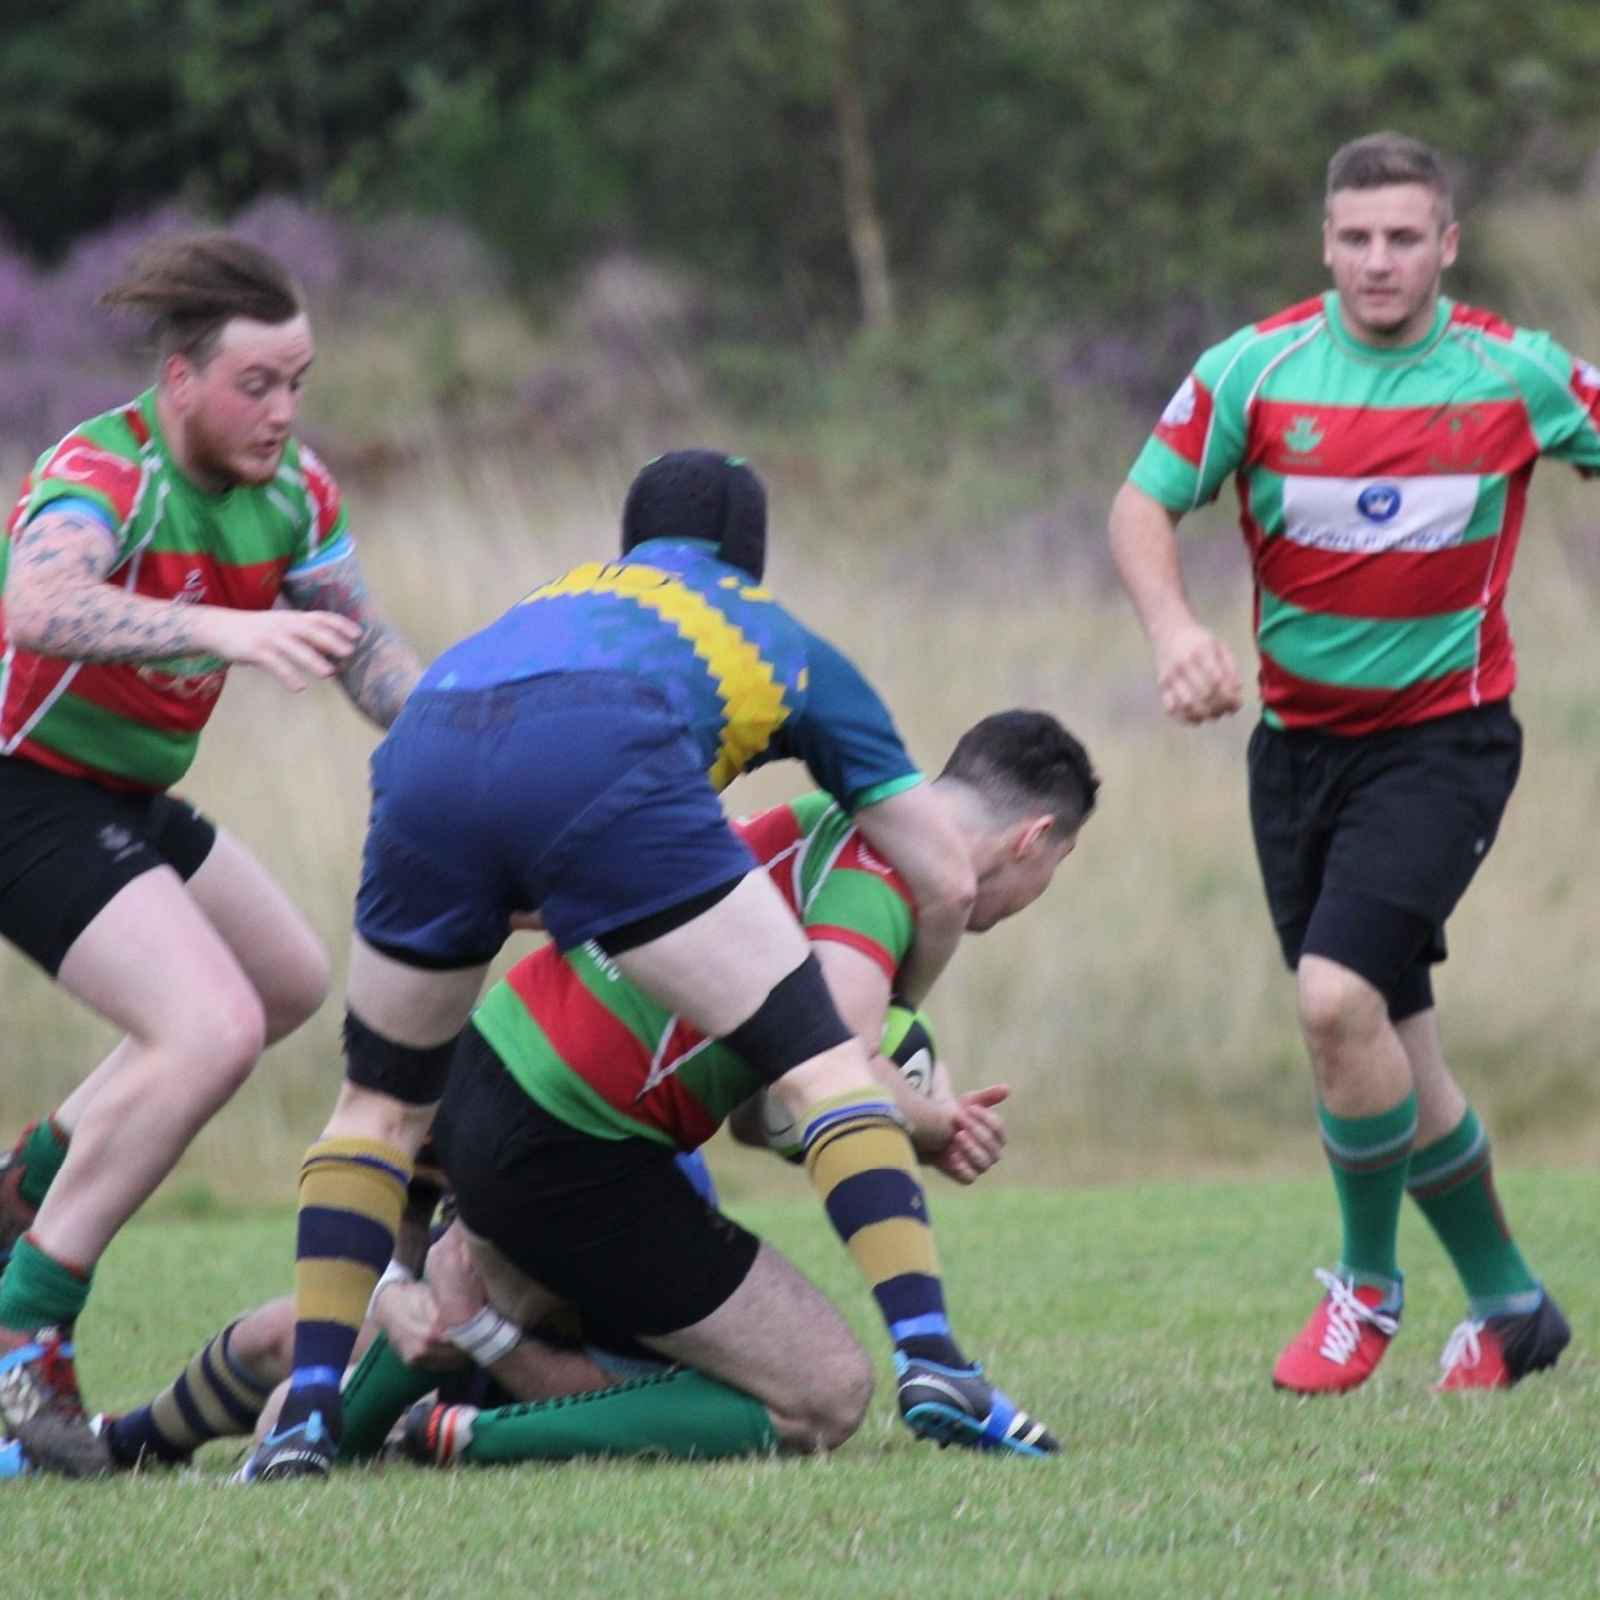 Burntwood 2s v Cannock 2s